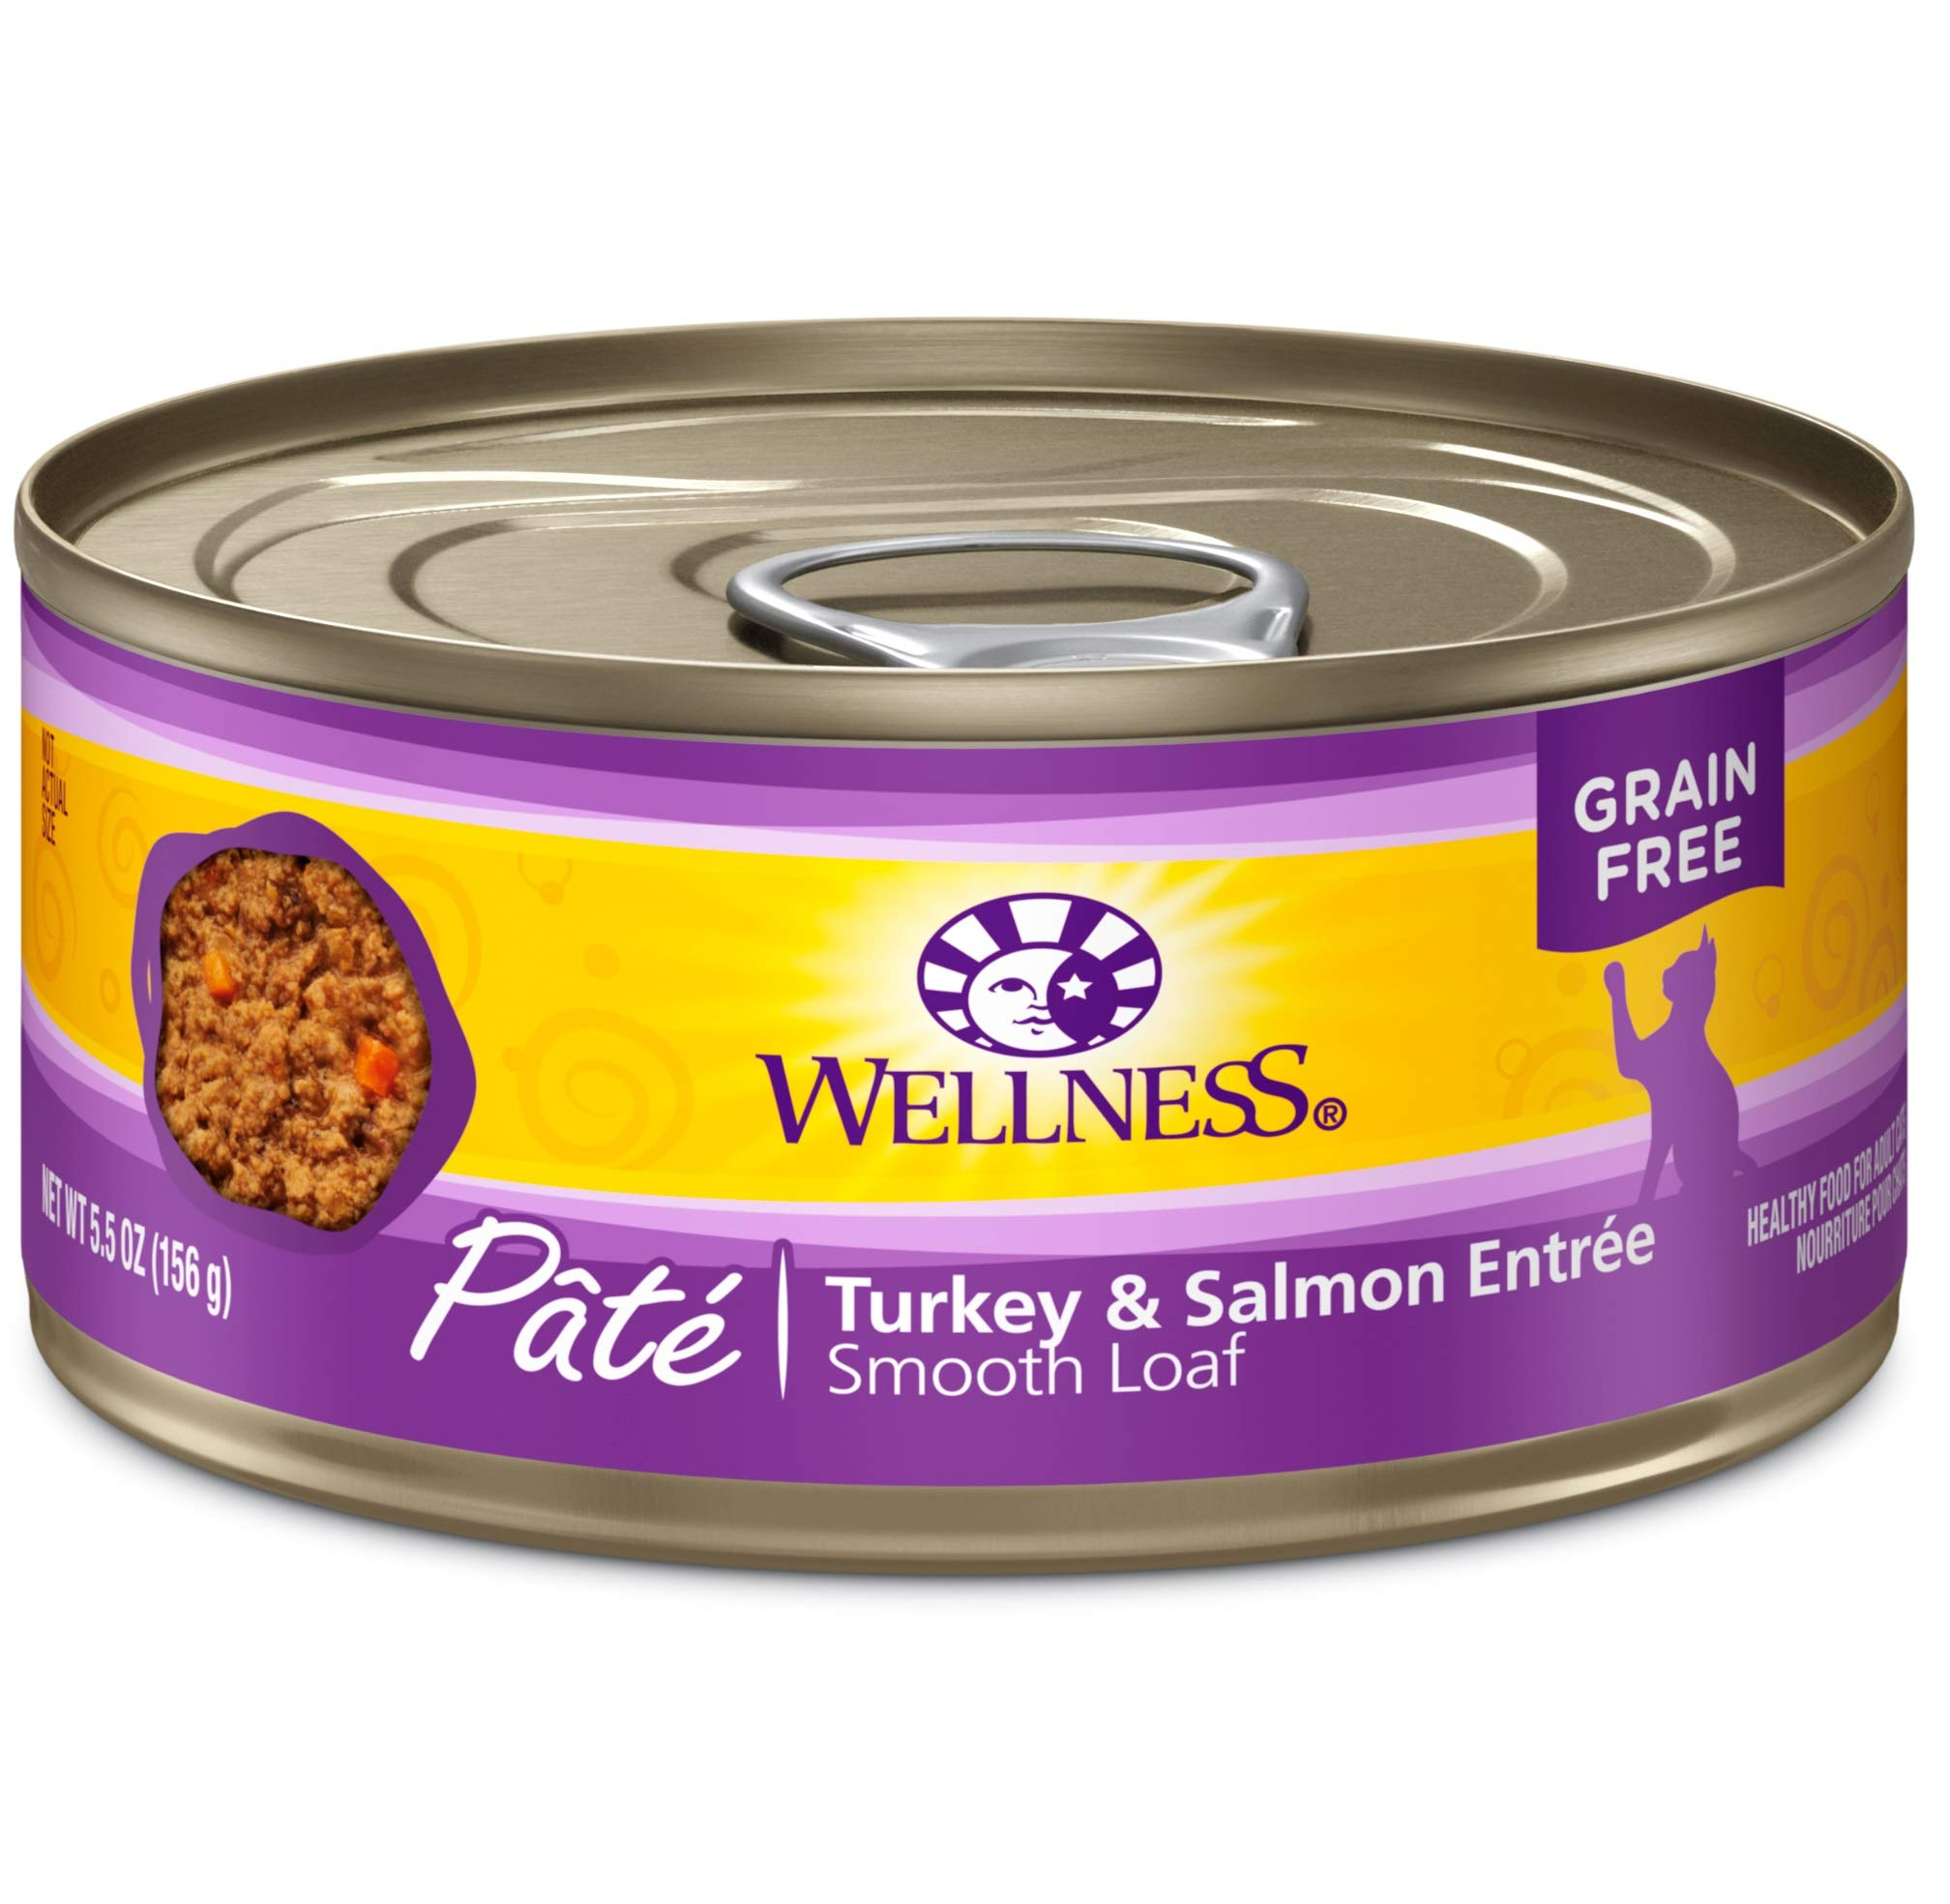 Wellness Natural Grain Free Wet Canned Cat Food, Turkey & Salmon Pate, 5.5-Ounce Can (Pack Of 24) by Wellness Natural Pet Food